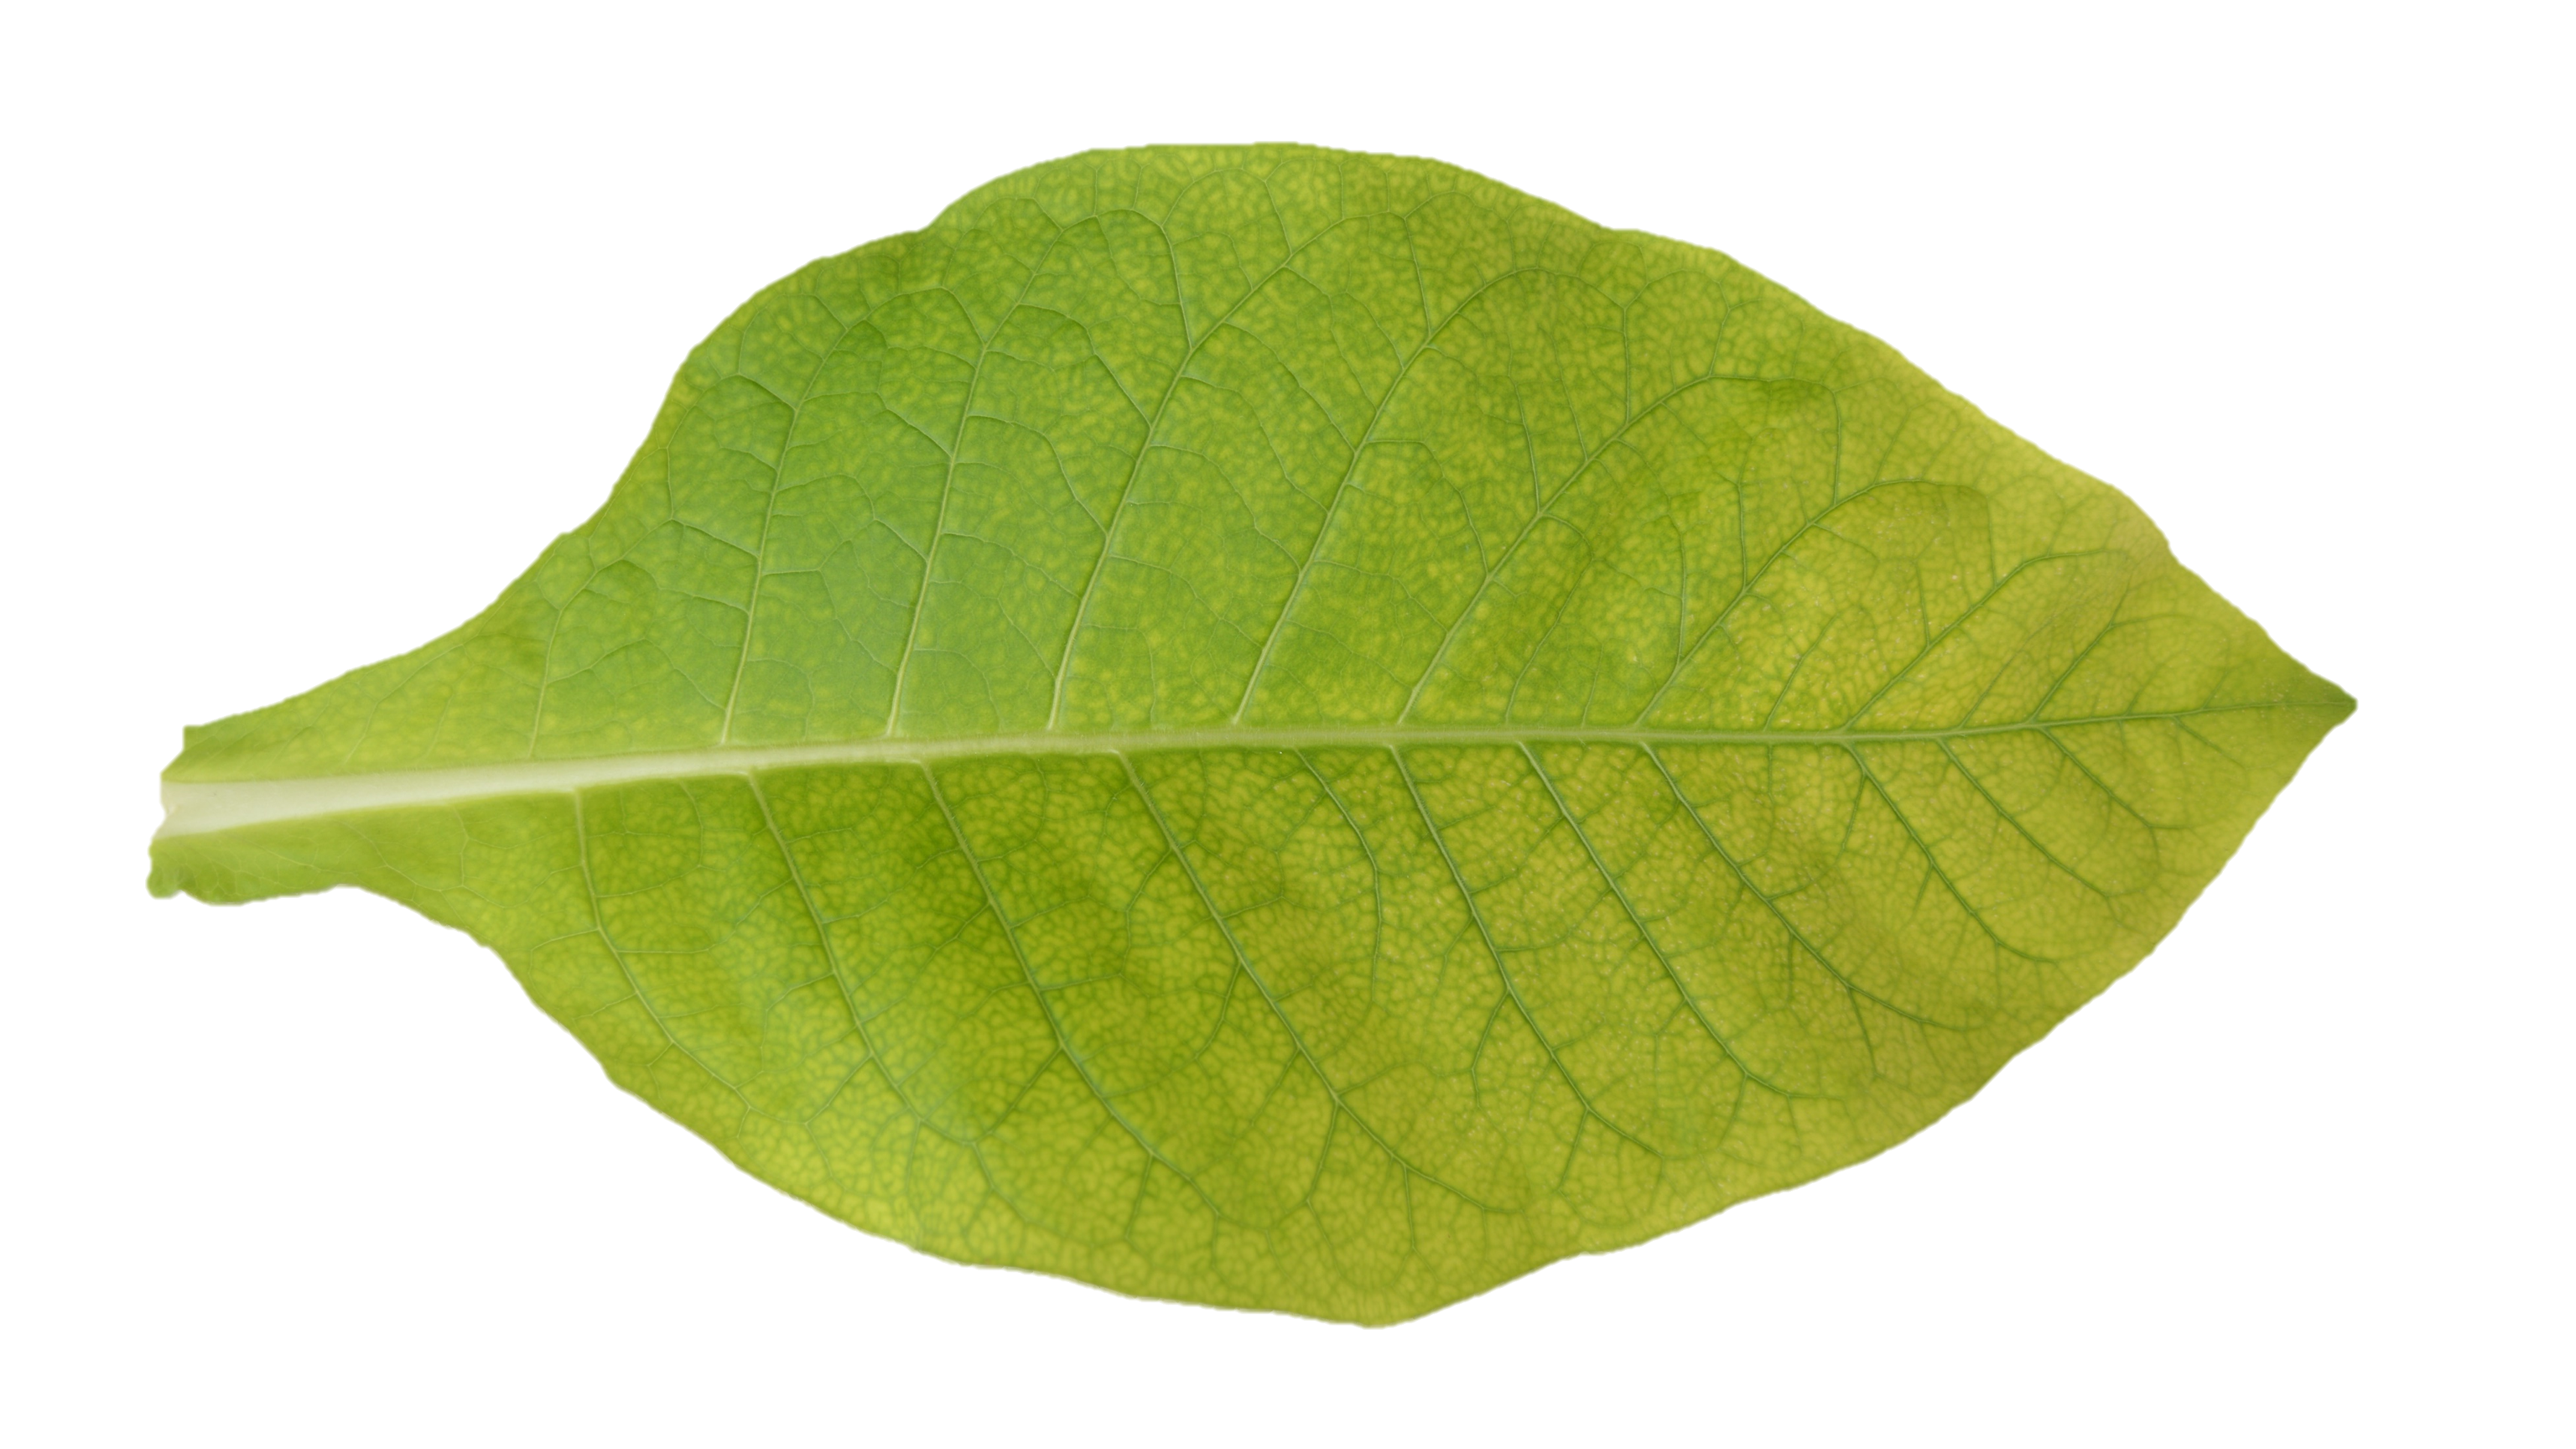 The pale netted pattern of chlorosis that occurs first on the upper foliage of manganese deficient plants.